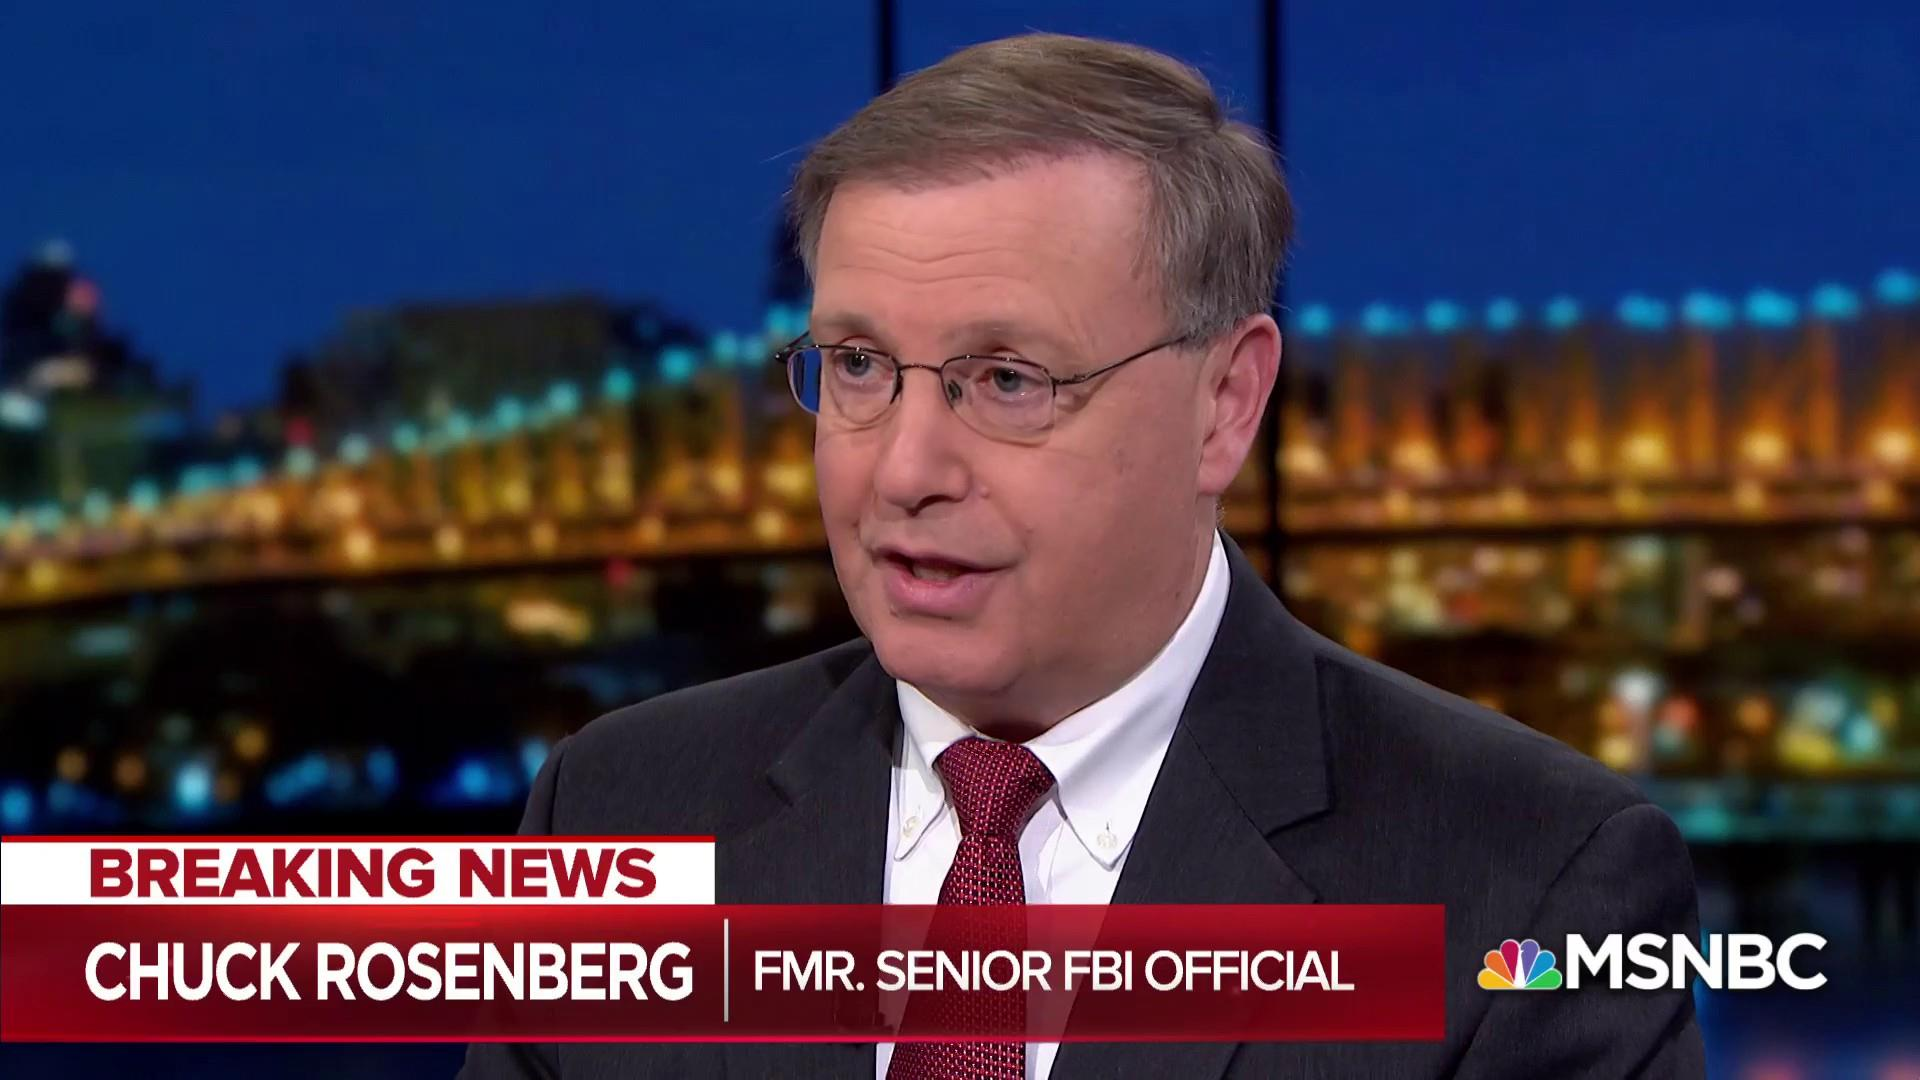 Rosenberg on Mueller Barr letter: 'You don't go to paper lightly'